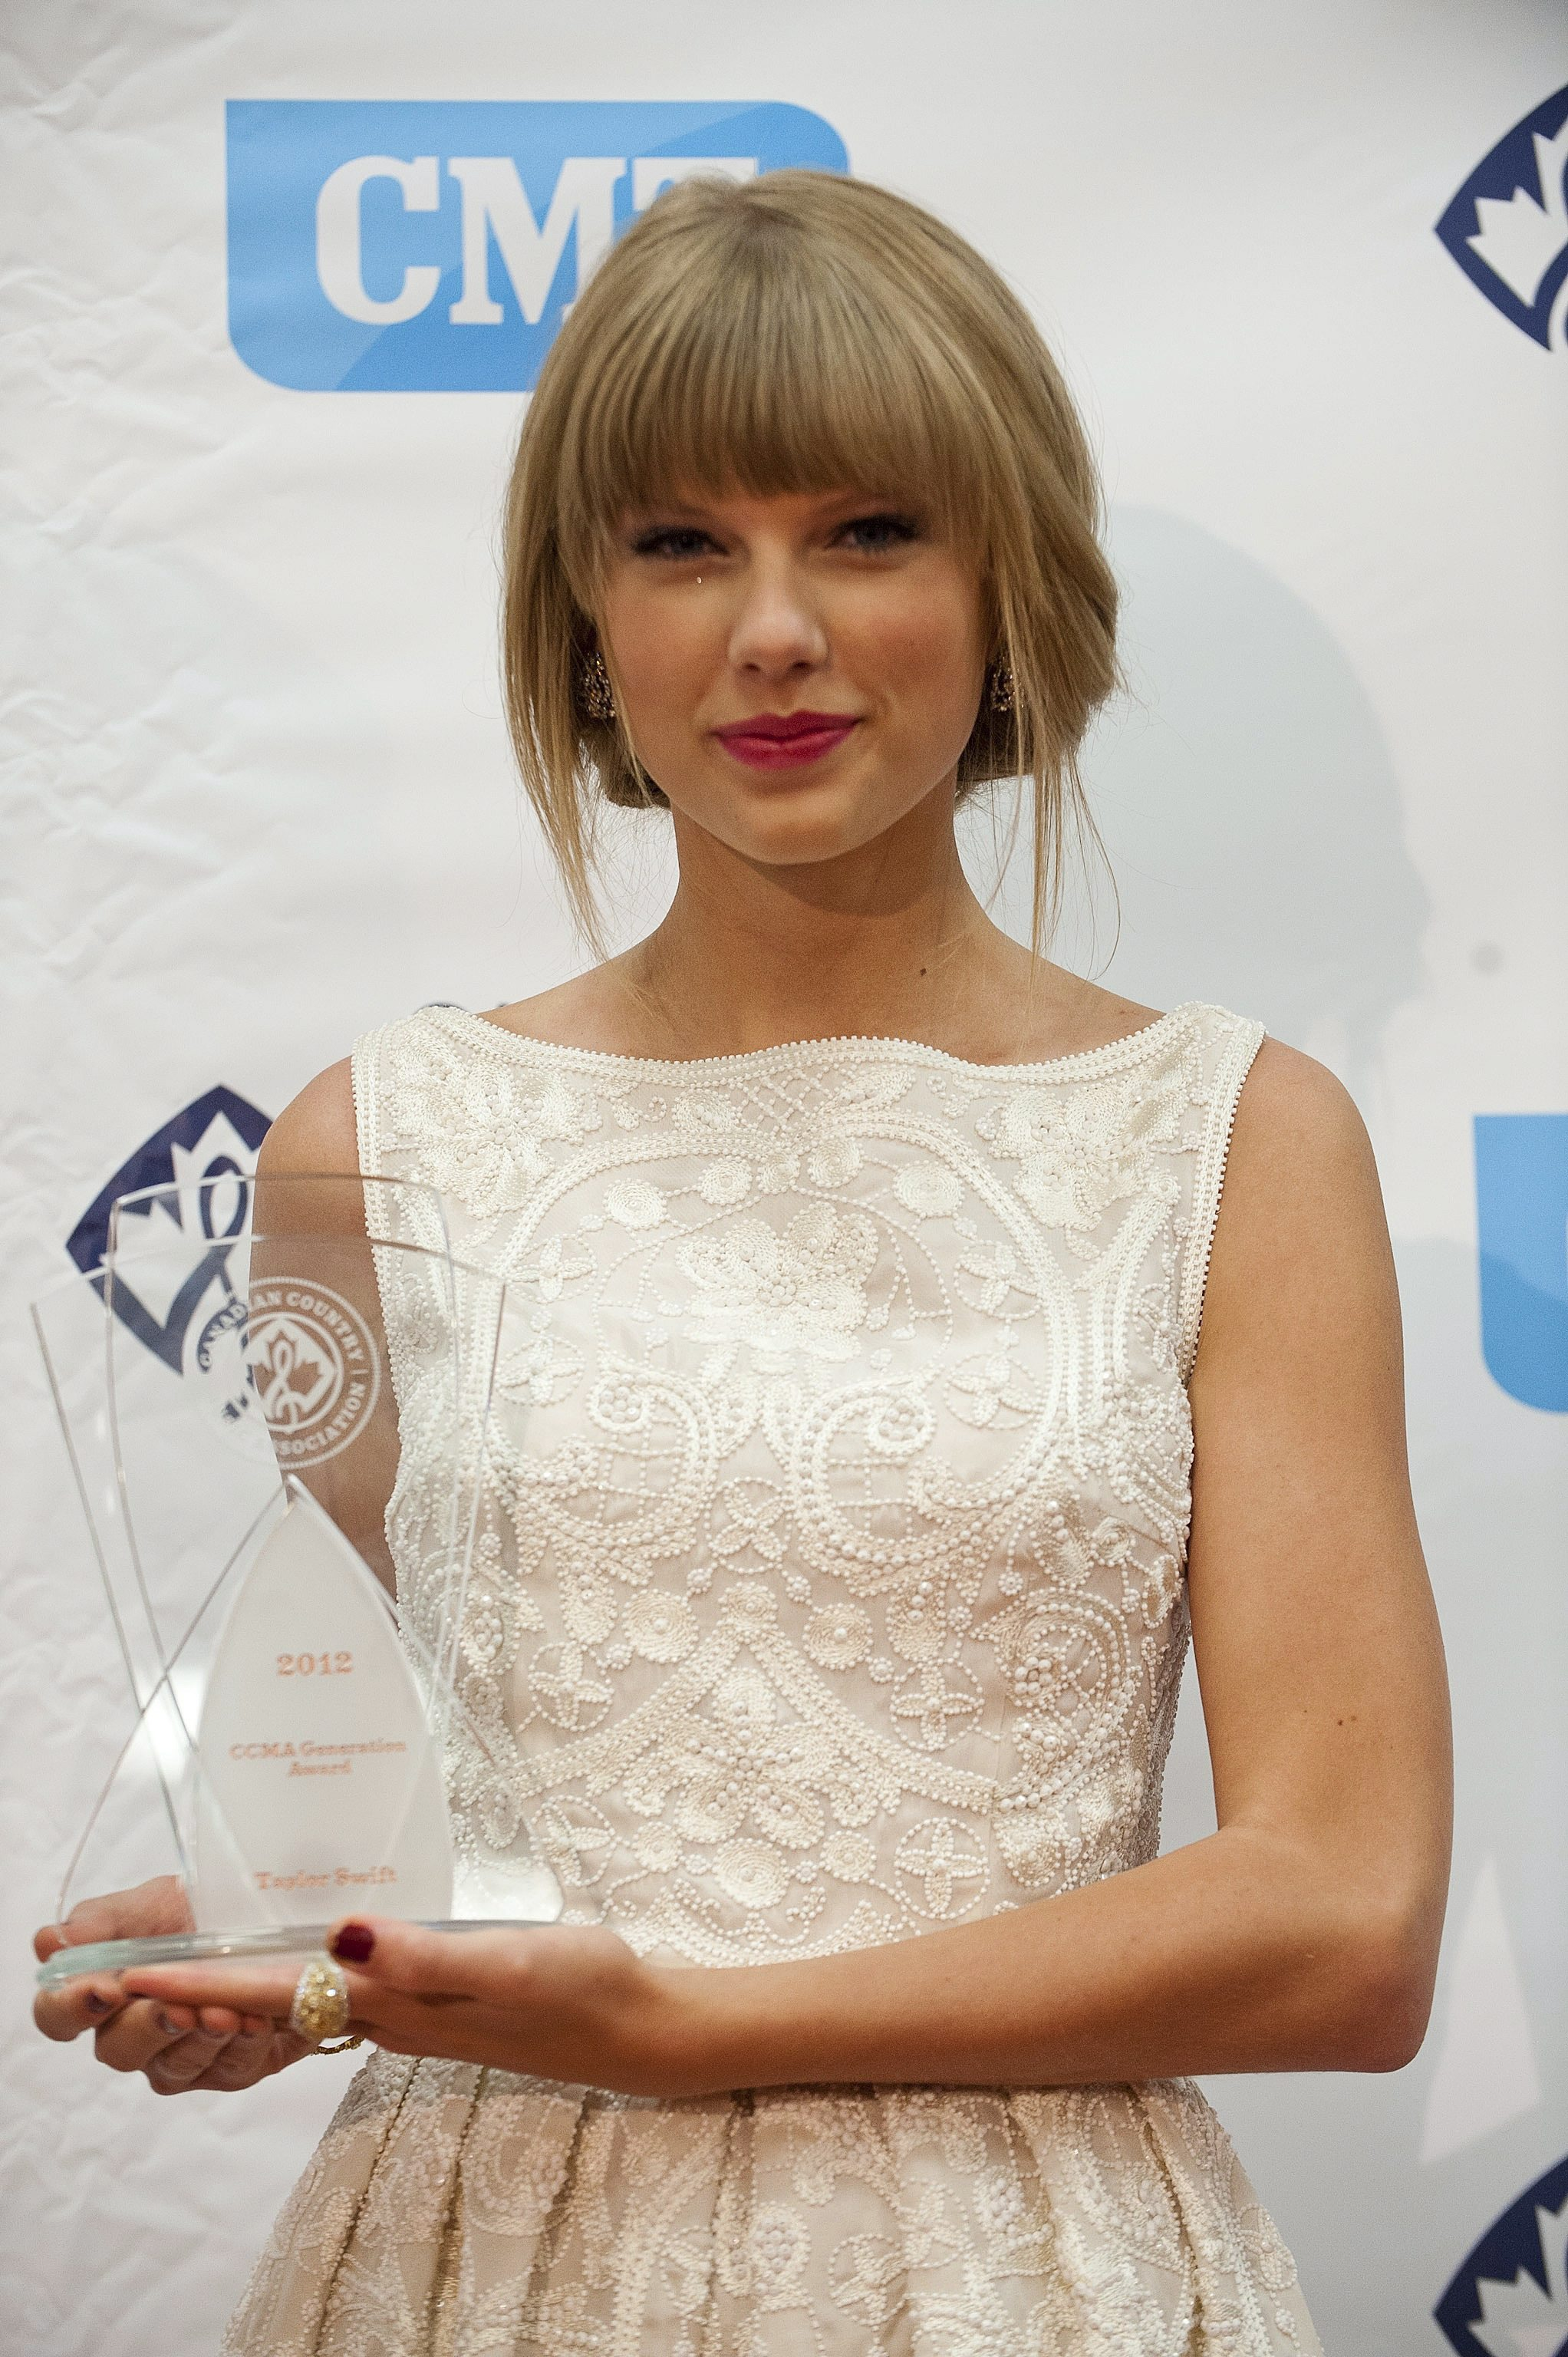 http://www.taylorpictures.net/albums/app/2012/ccmaawards/006.jpg